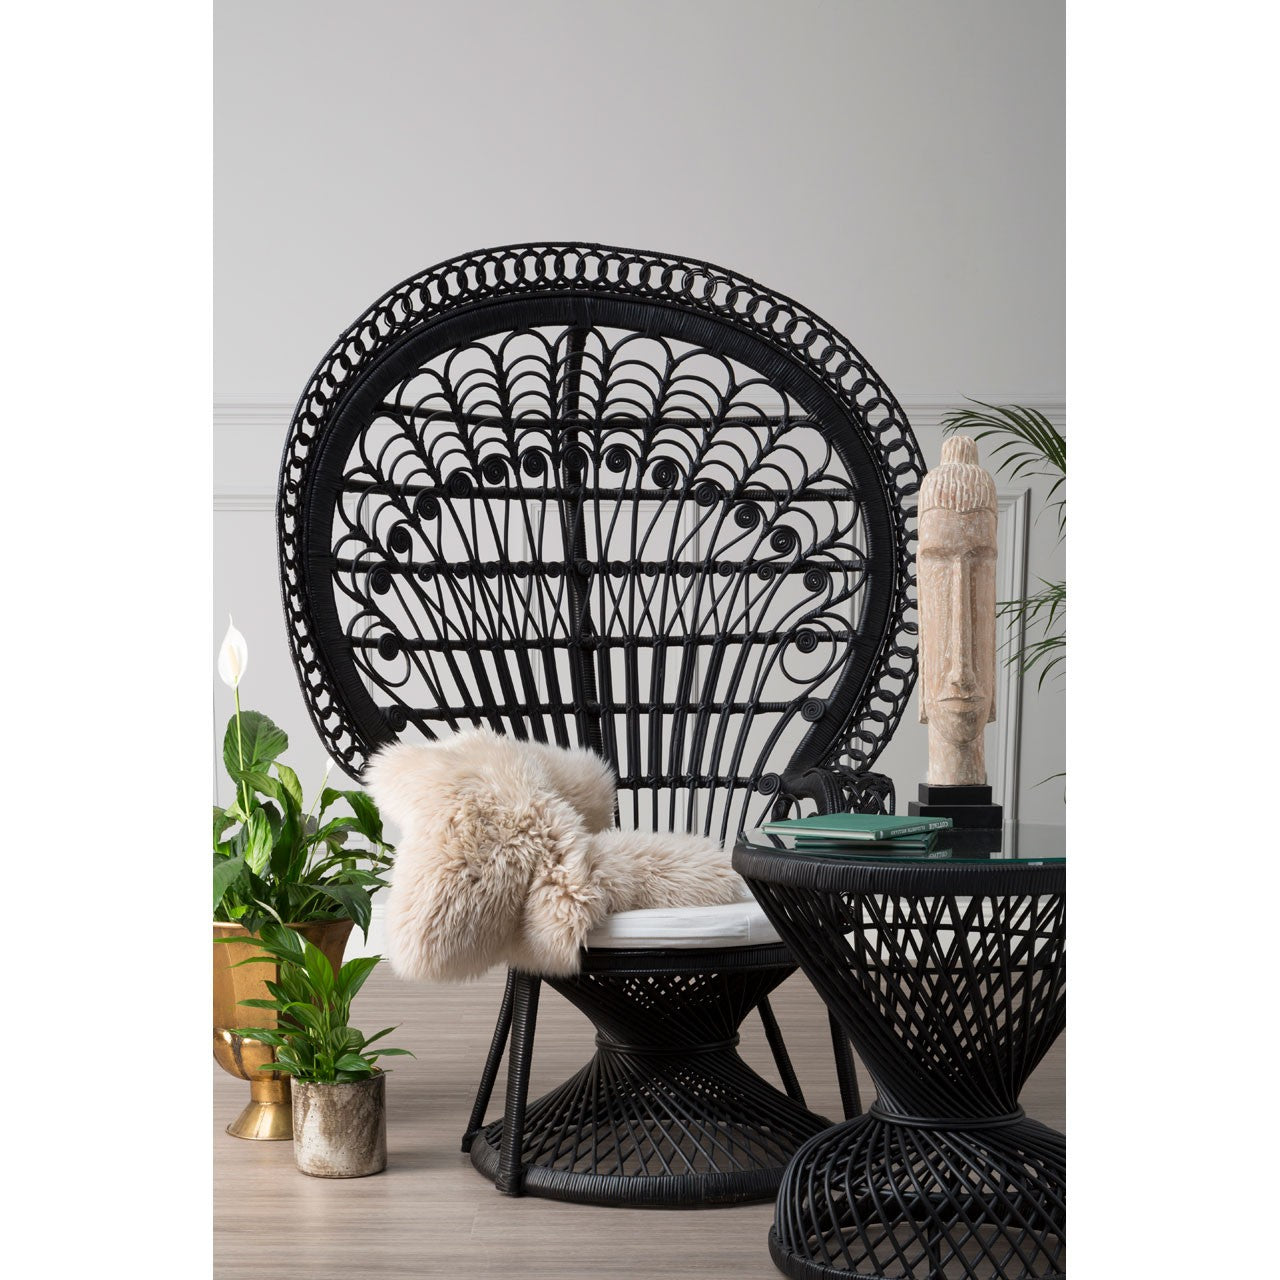 Woodstock Peacock Rattan Chair Black